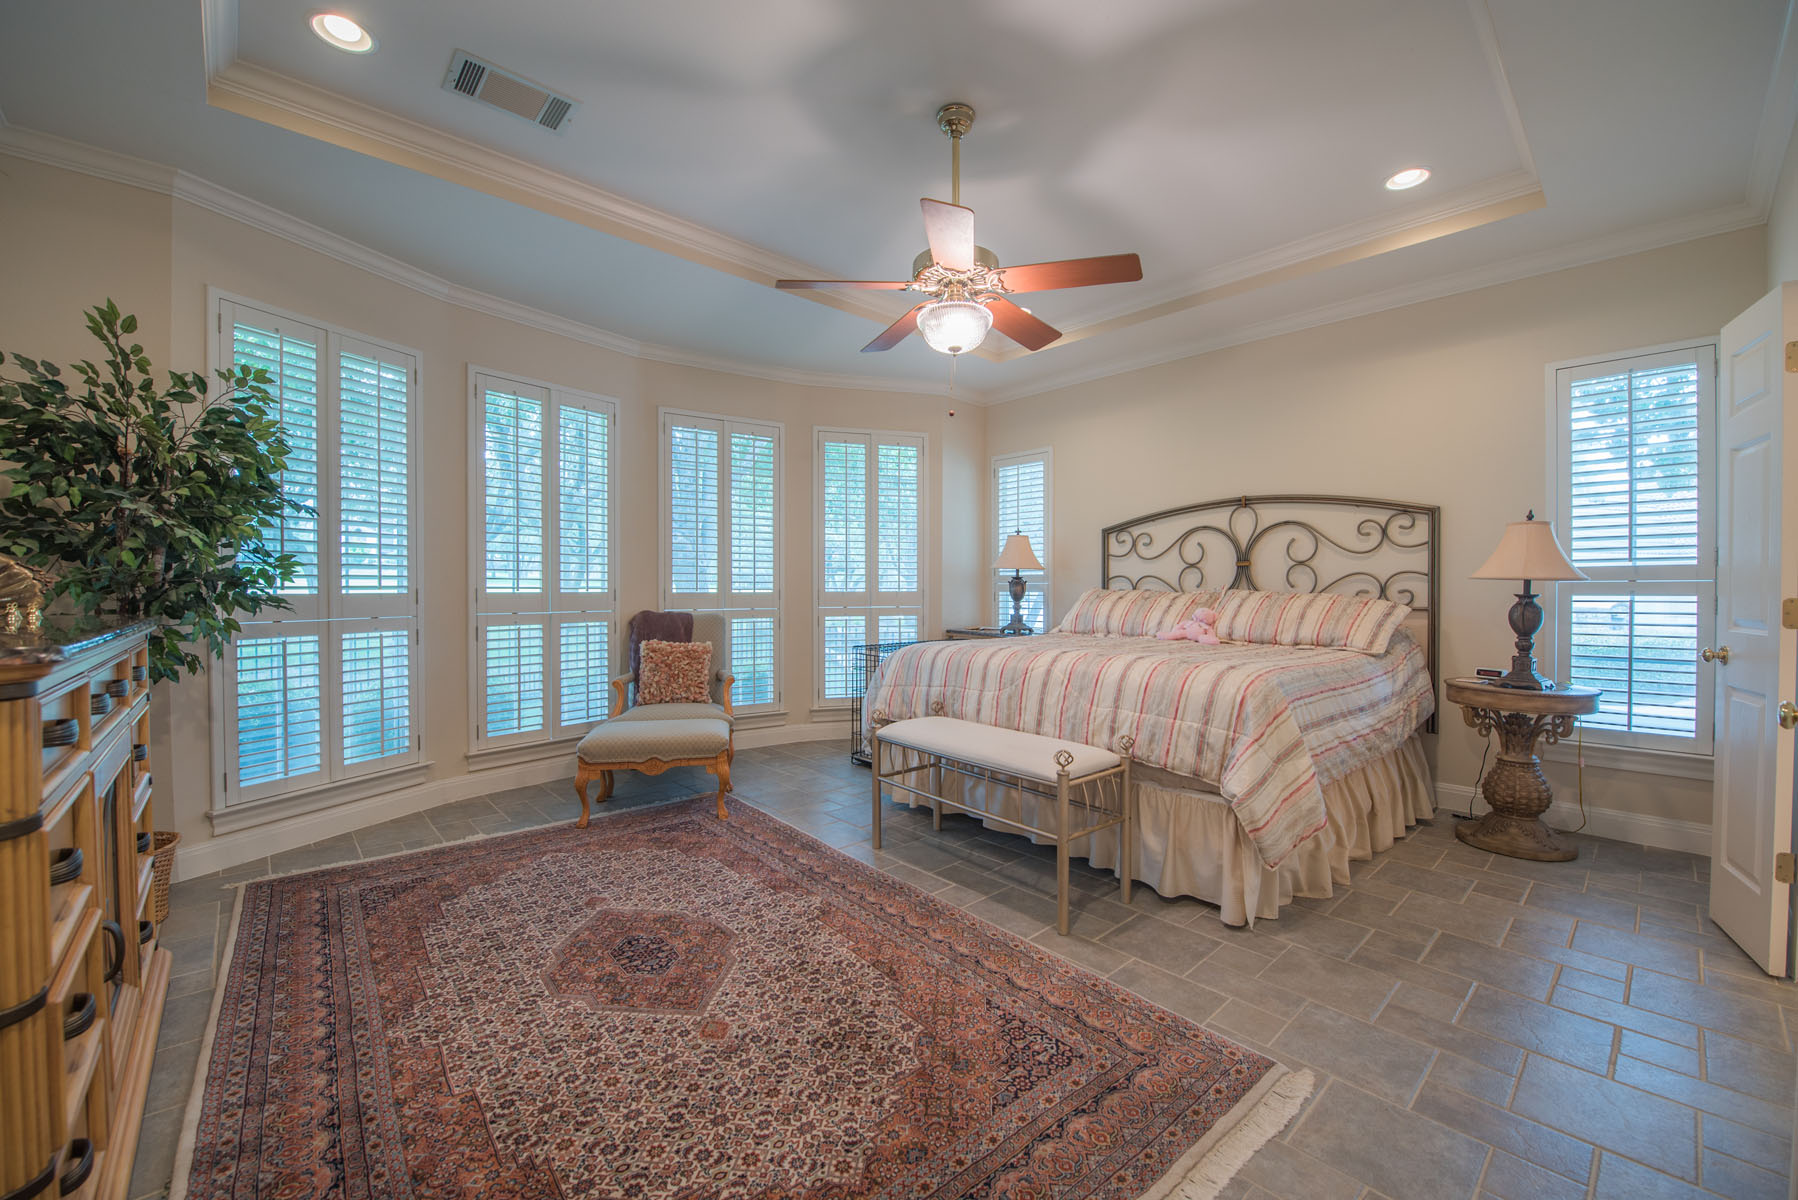 Additional photo for property listing at Golf Course Living 313 The Hills Dr 16 The Hills, Texas 78738 United States